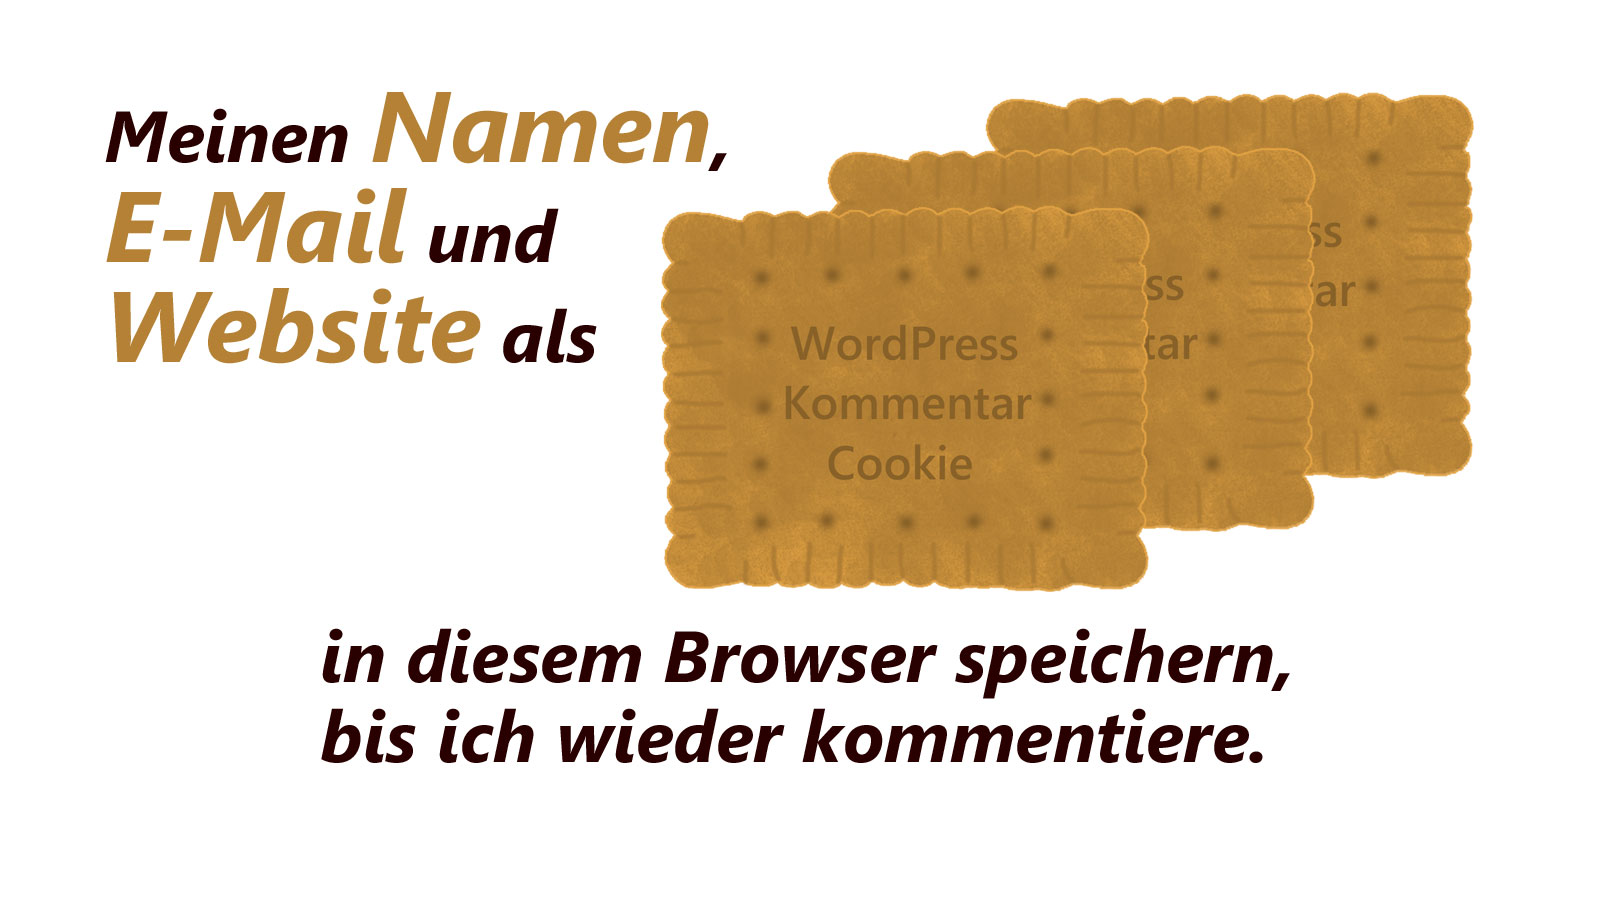 Die WordPress Kommentar Checkbox dient den WordPress Kommentar Cookies